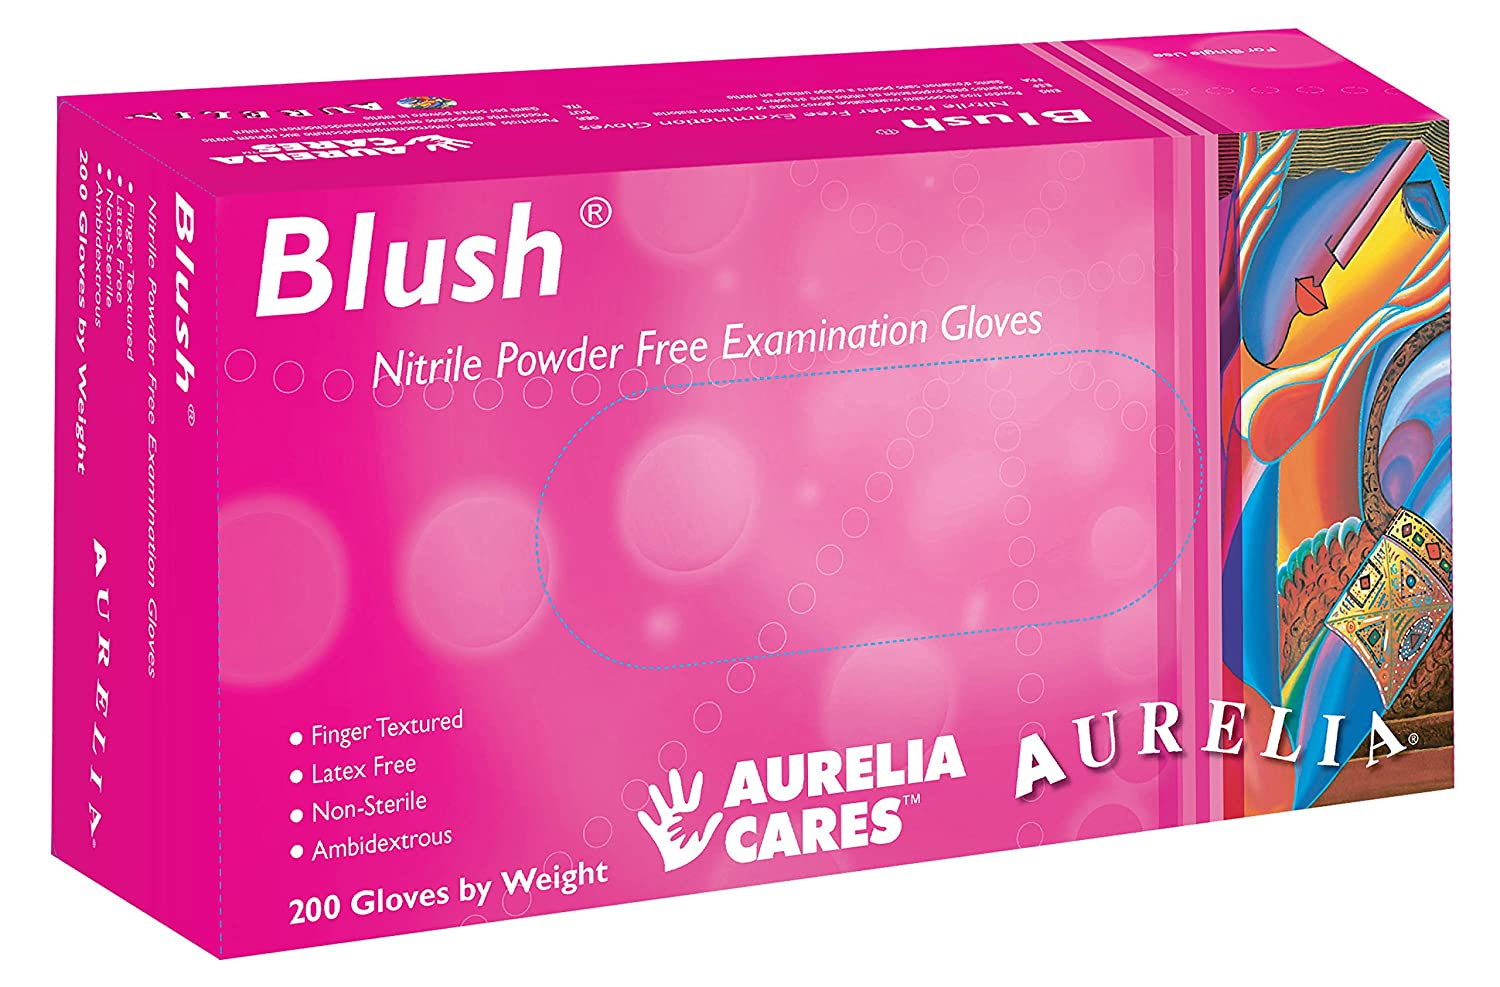 Aurelia Blush, Pink Nitrile Gloves, 2.5 Mil Thick, Size:XSmall (200 Count Box) Supermax Healthcare Inc. SUPL78885